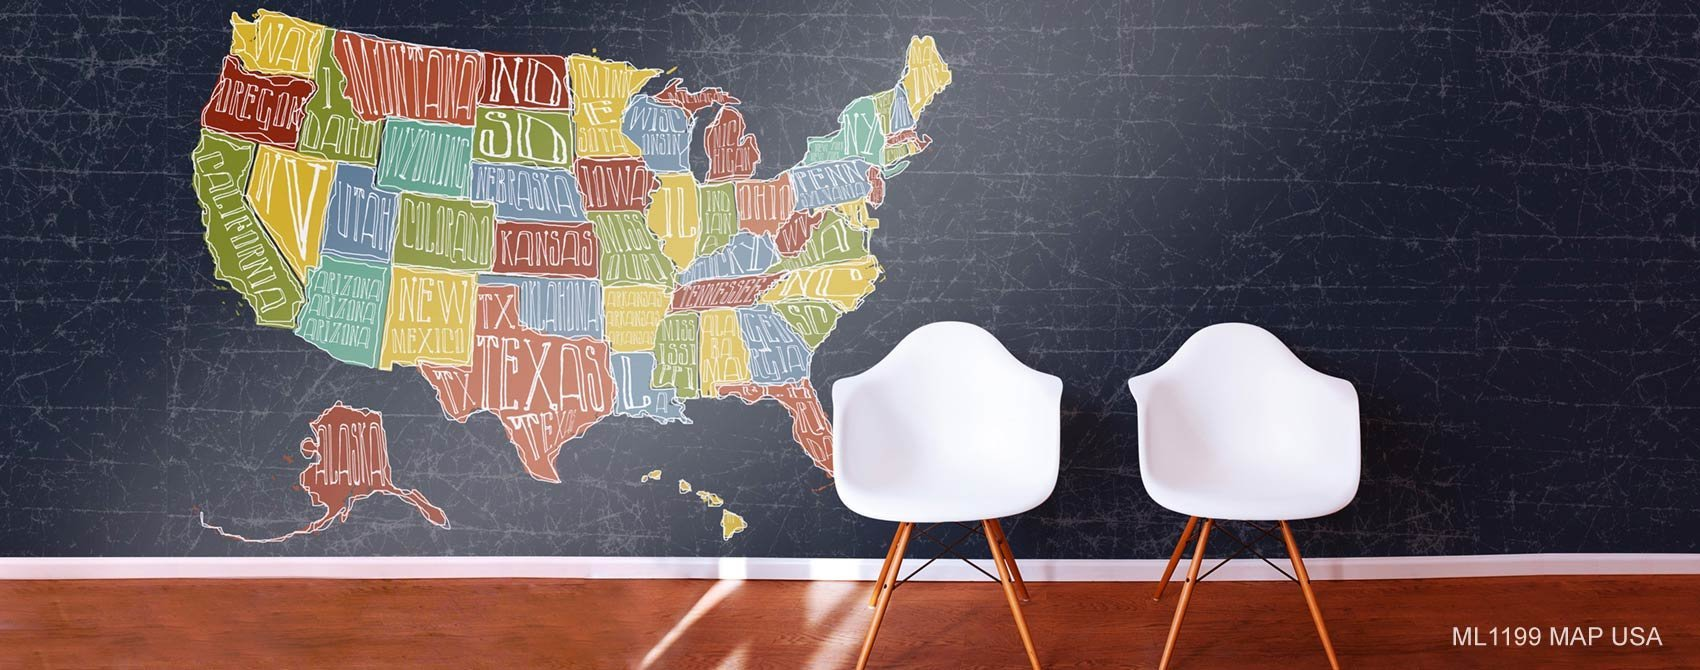 Map USA Wallpaper Mural